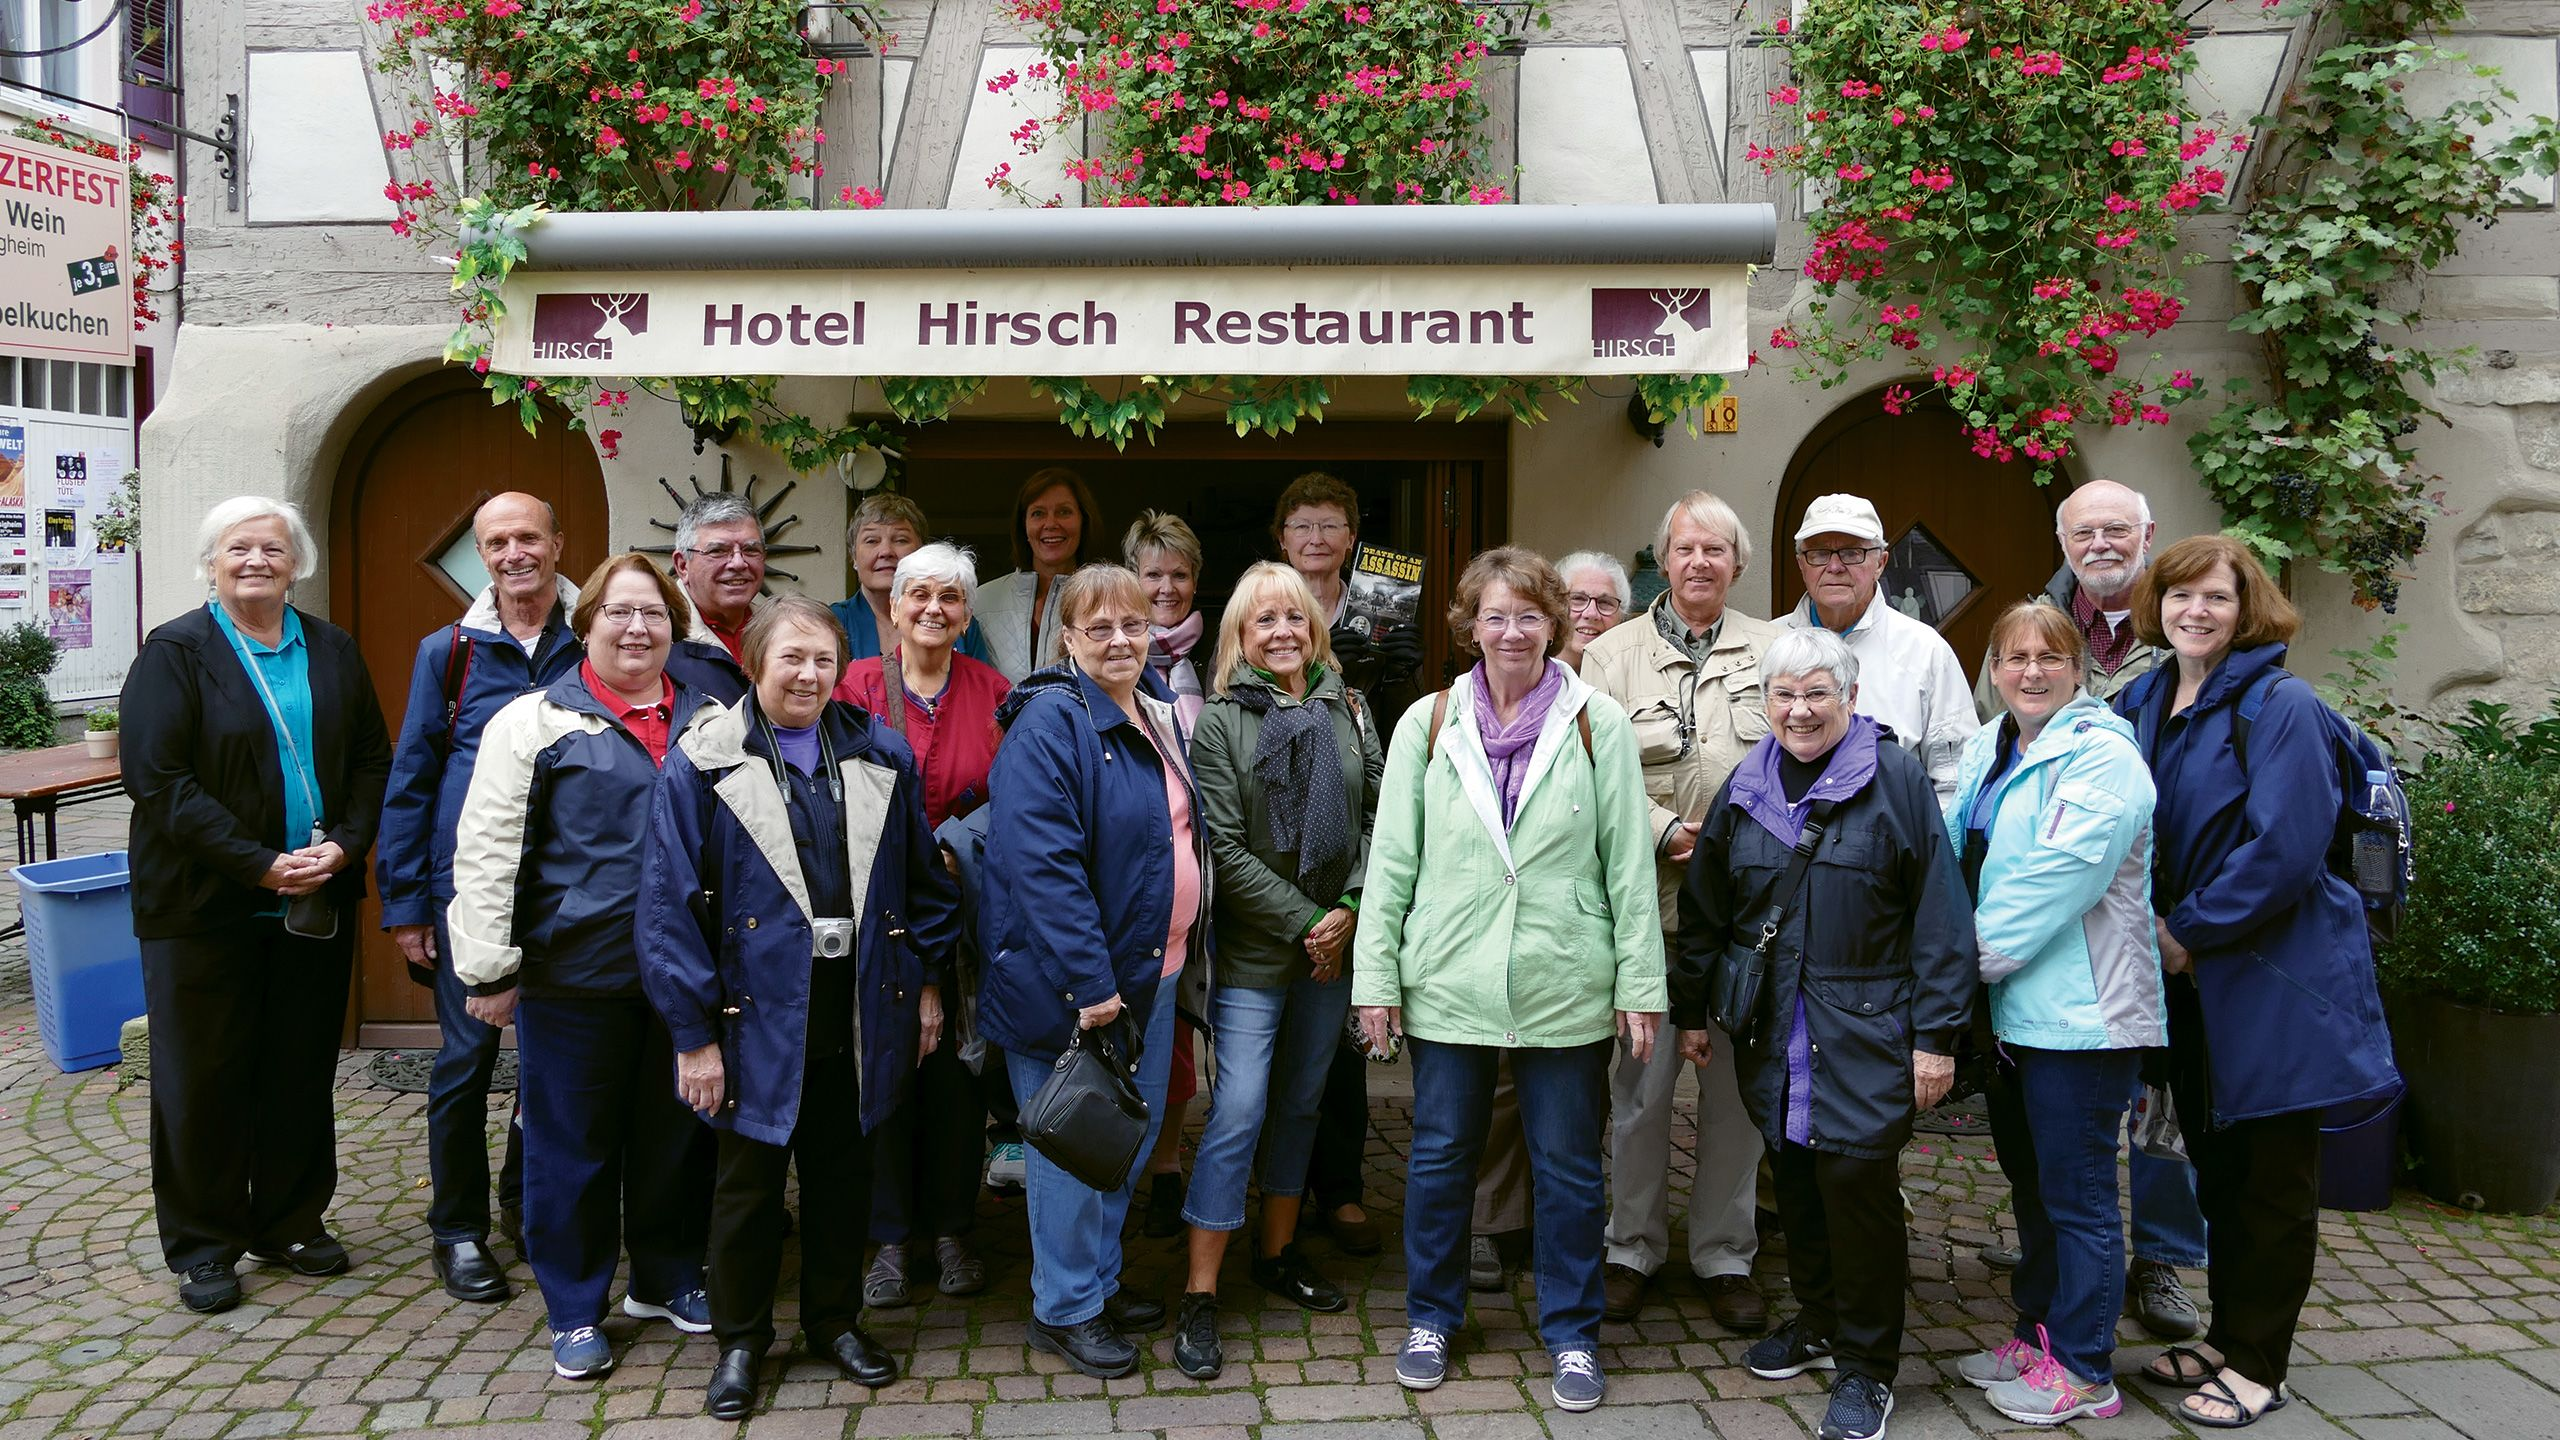 Kathy Wurth of Family Tree Tours, center in light green, leading a heritage travel group in Germany last year. Wurth was inspired to launch Family Tree Tours after going on a heritage tour with her mother in the 1970s.